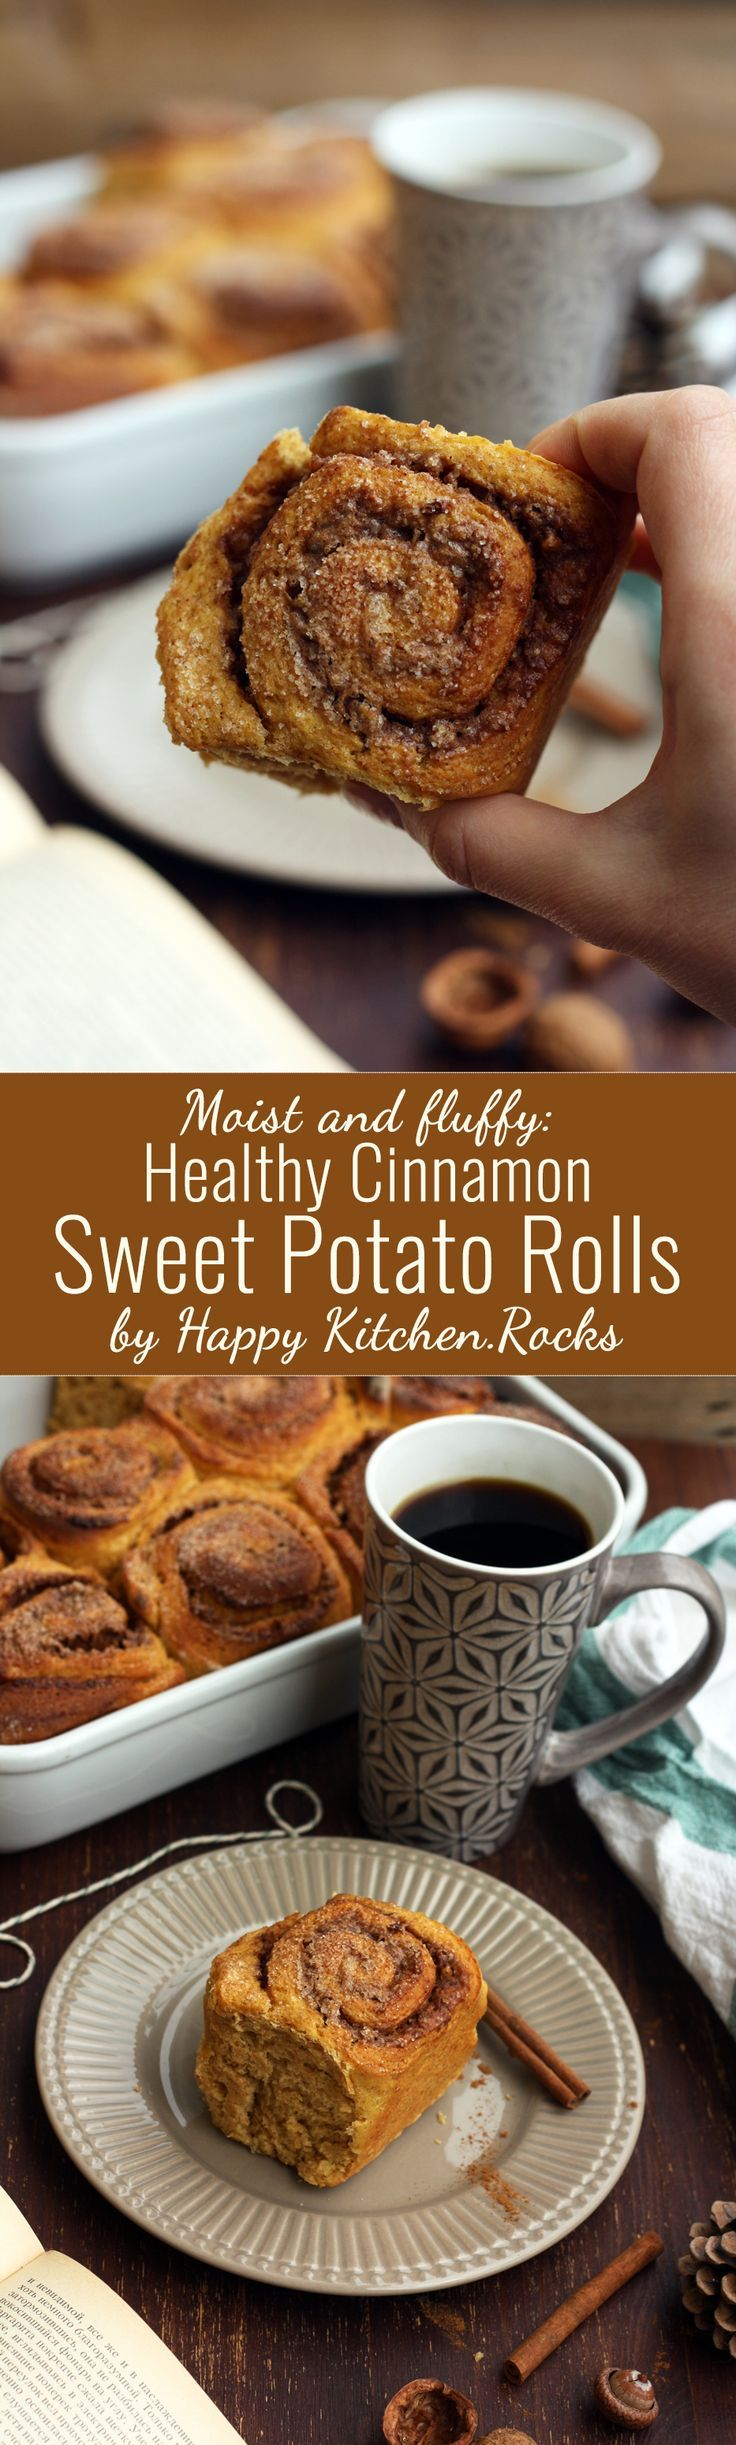 Healthy Cinnamon Sweet Potato Rolls recipe, perfect for fall or Thanksgiving breakfast or brunch. These rolls are delicious, moist, fluffy and easy to make!